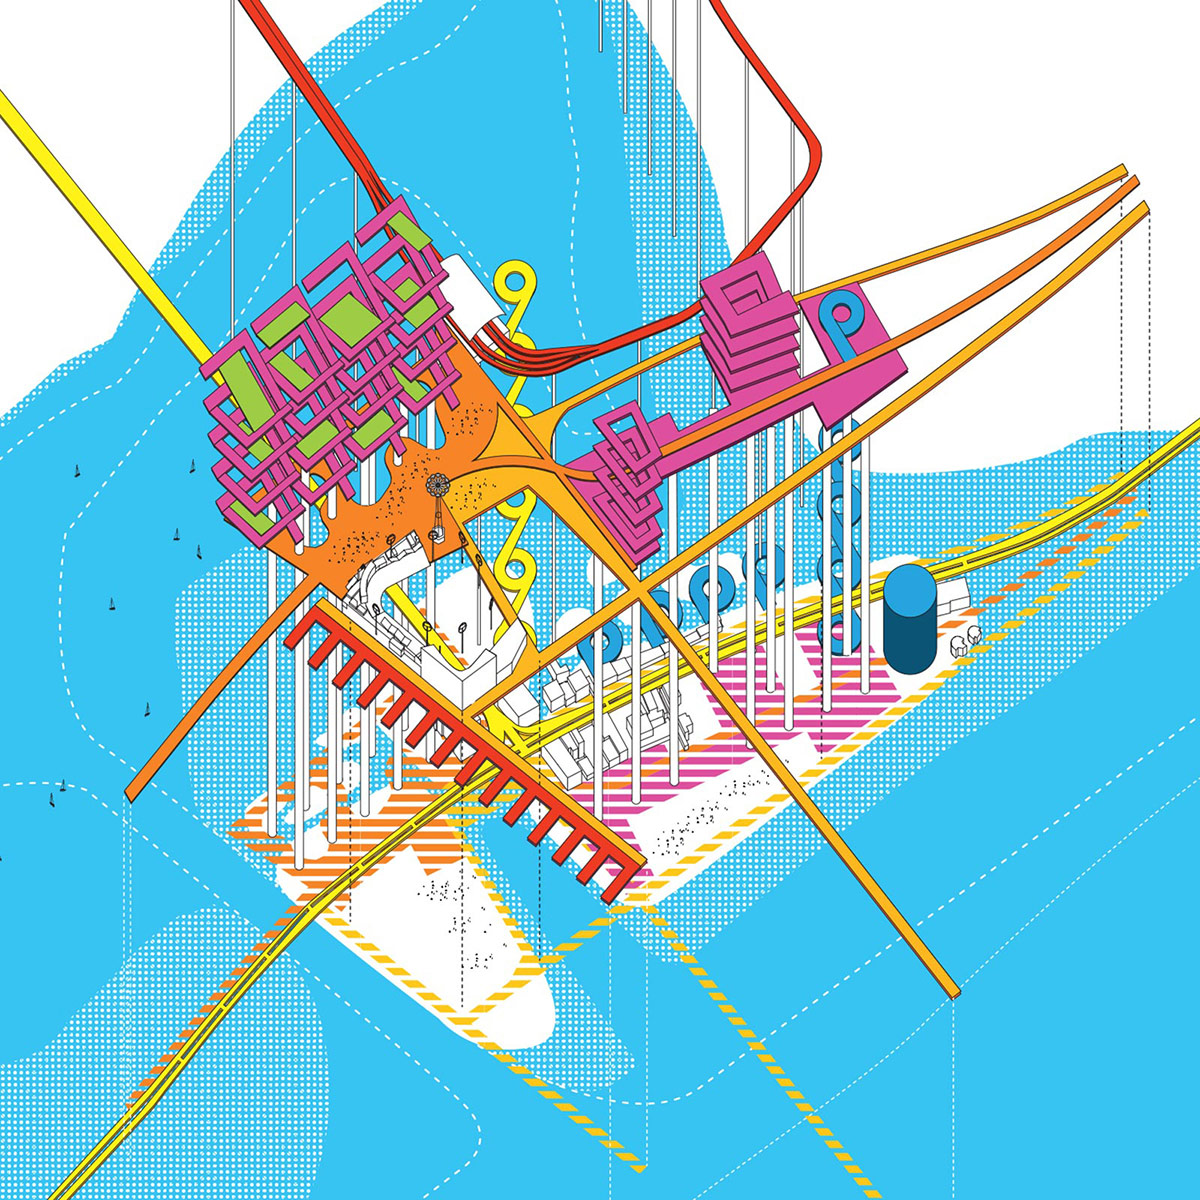 Exploded axonometric study looking at the various layers of the lifted CISL infrastructure above a shifting landscape